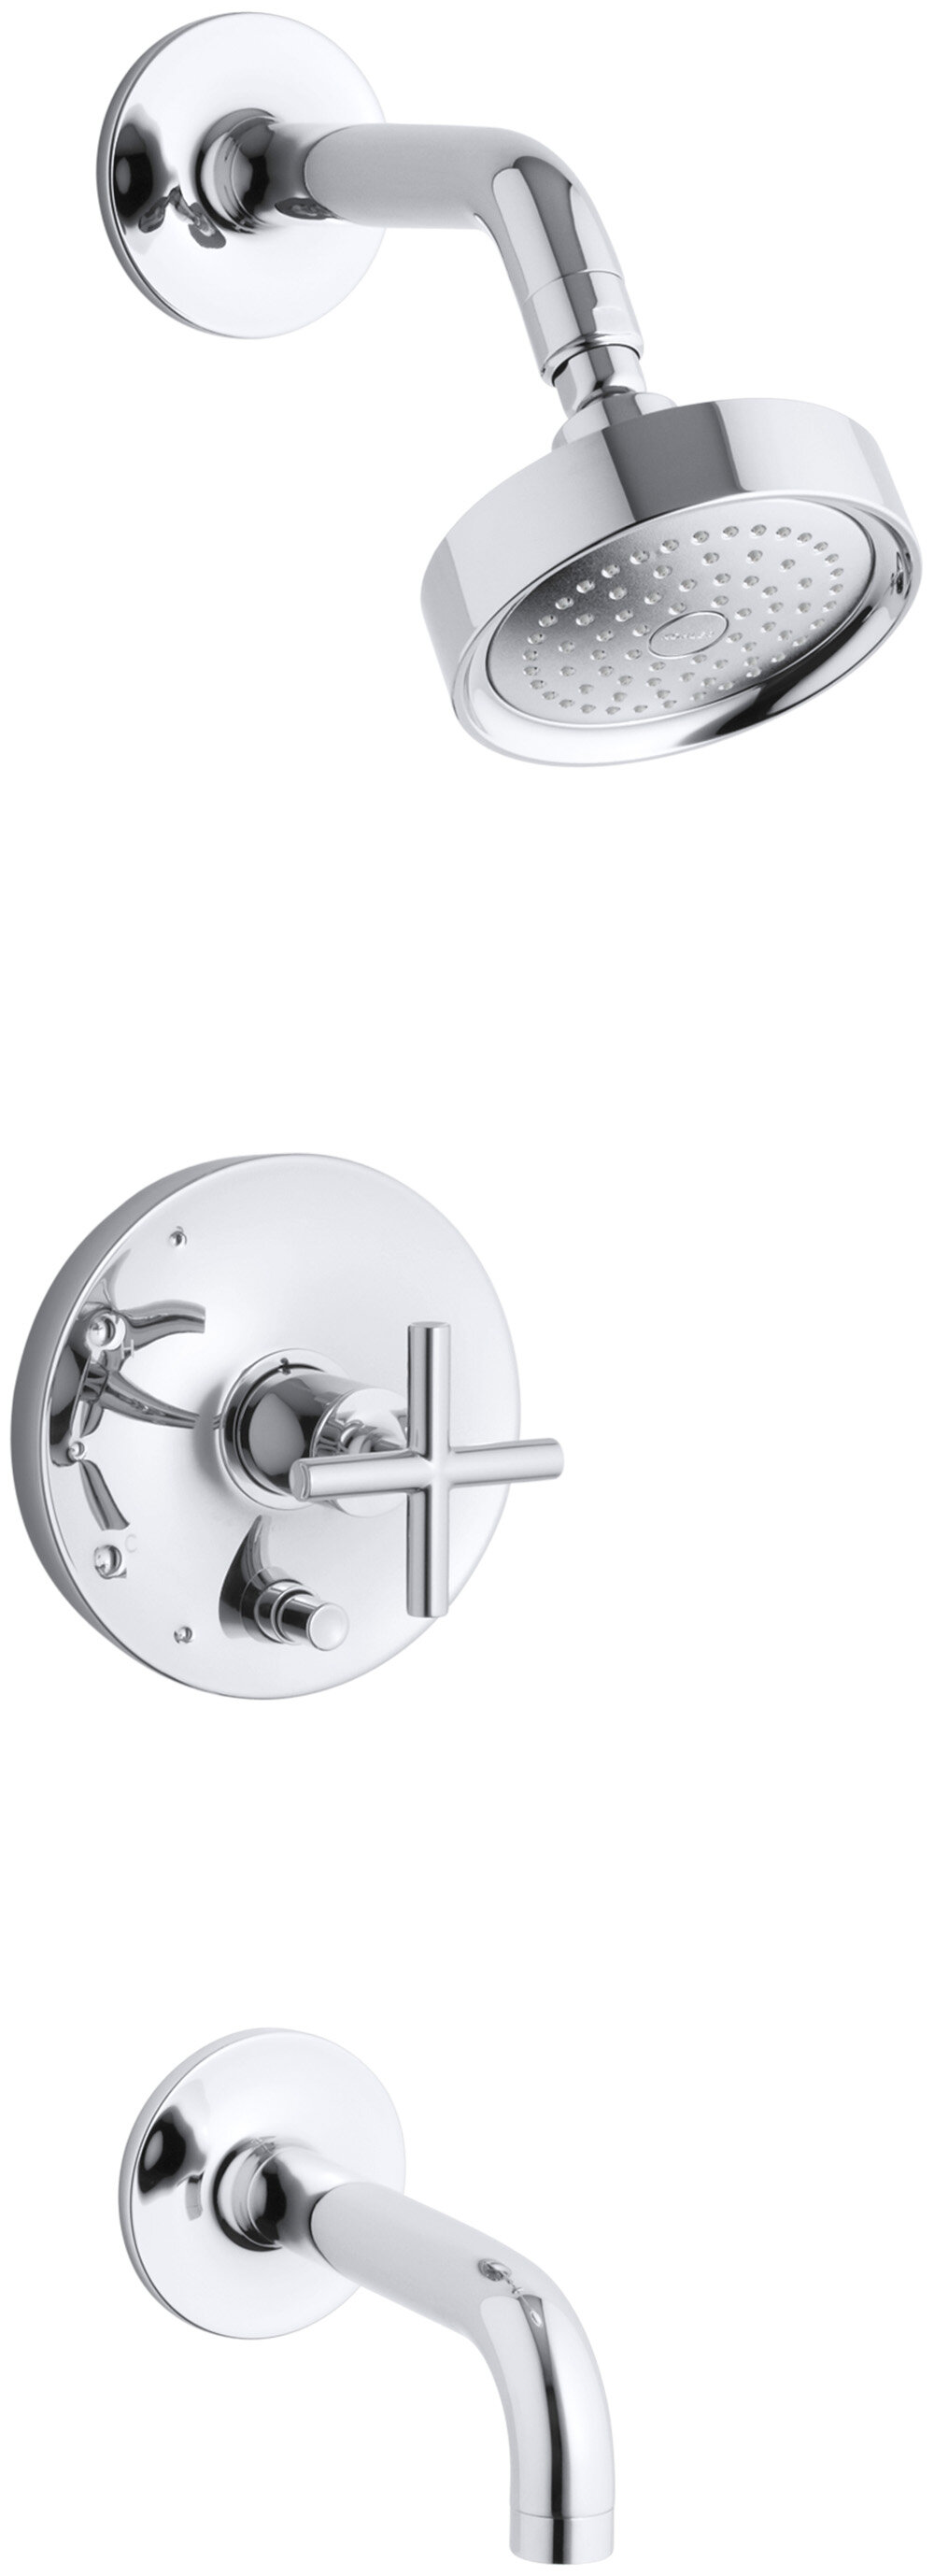 with built concealed in faucets diverter options valve outlet triple shower kia faucet thermostatic jule ufg